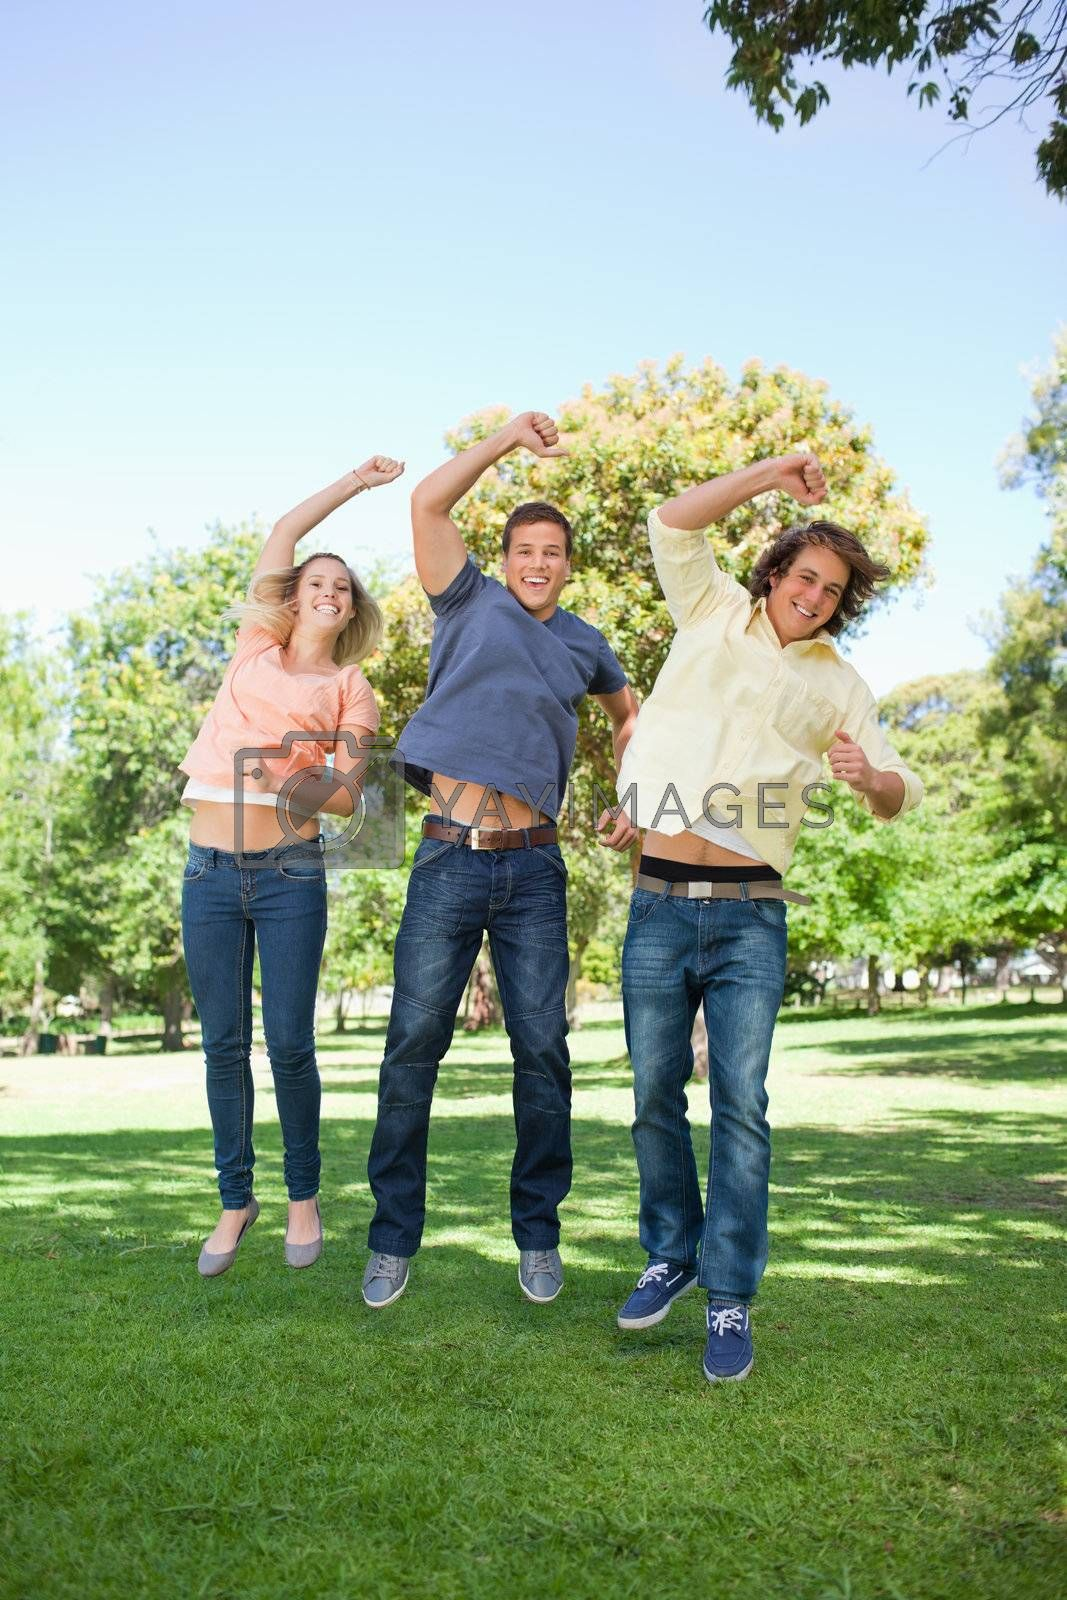 Three students jumping while raising an arm in a park